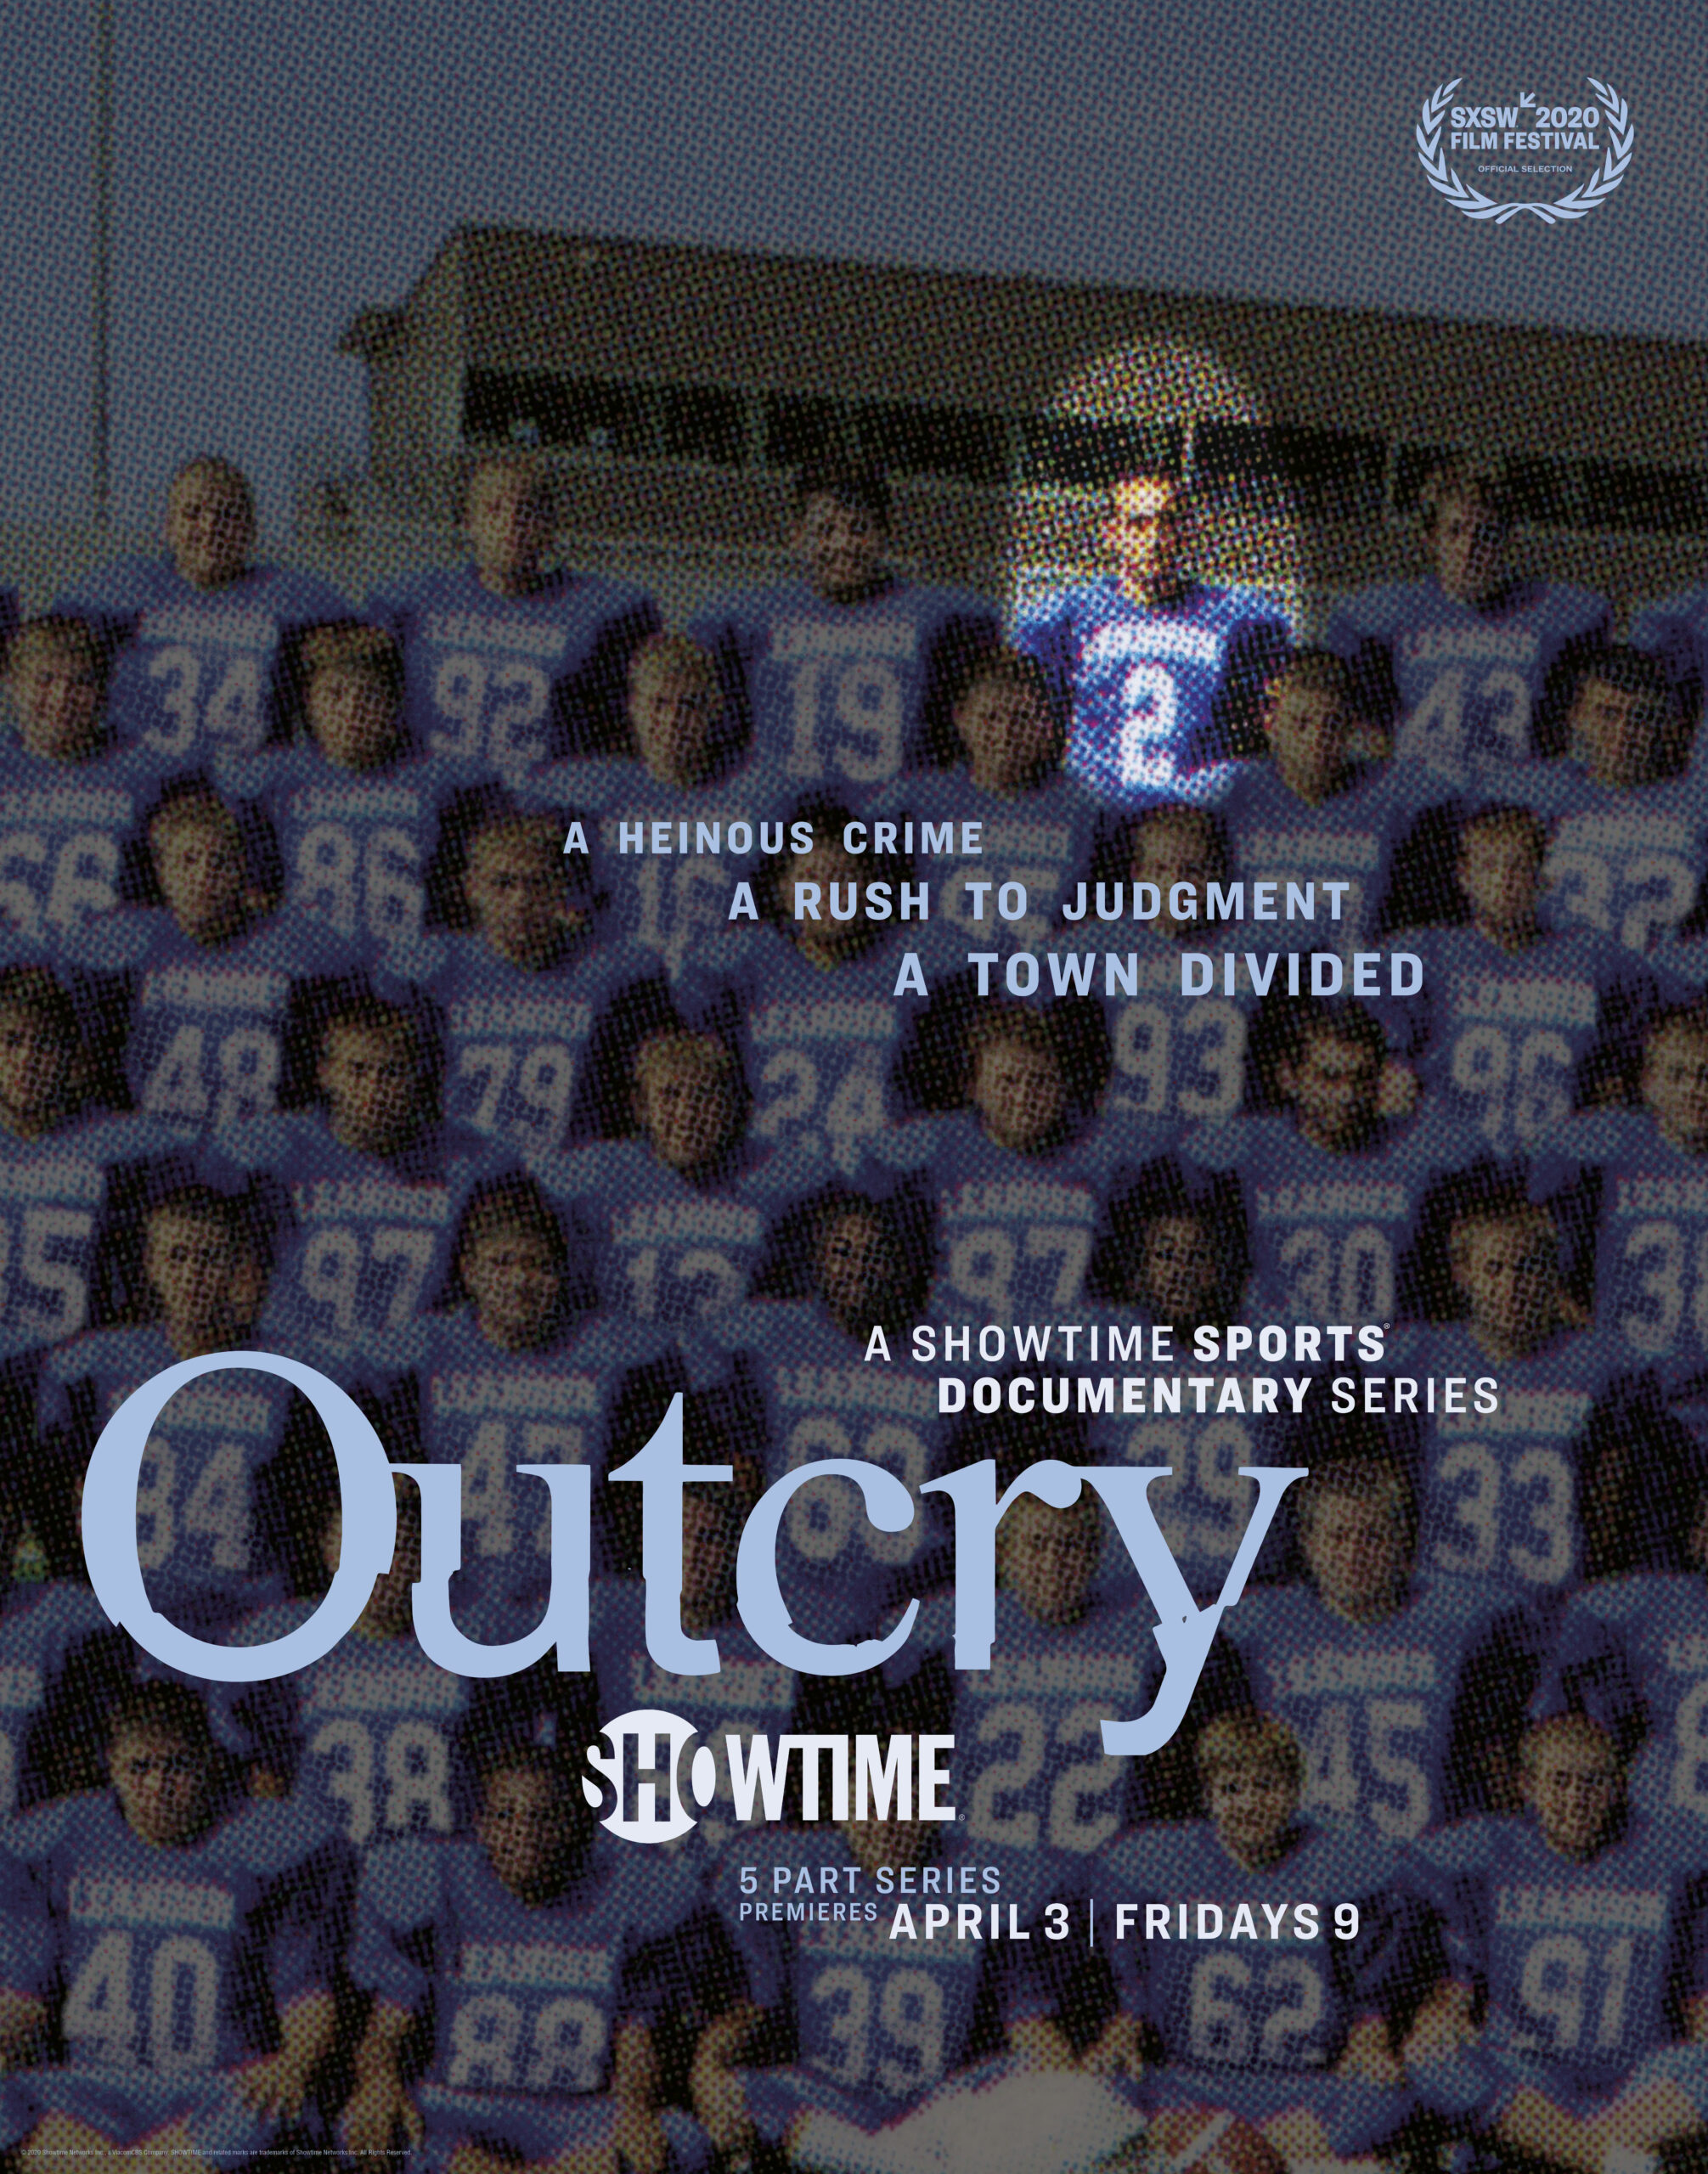 SHOWTIME RELEASES TRAILER AND POSTER ART FOR NEW DOCU-SERIES OUTCRY